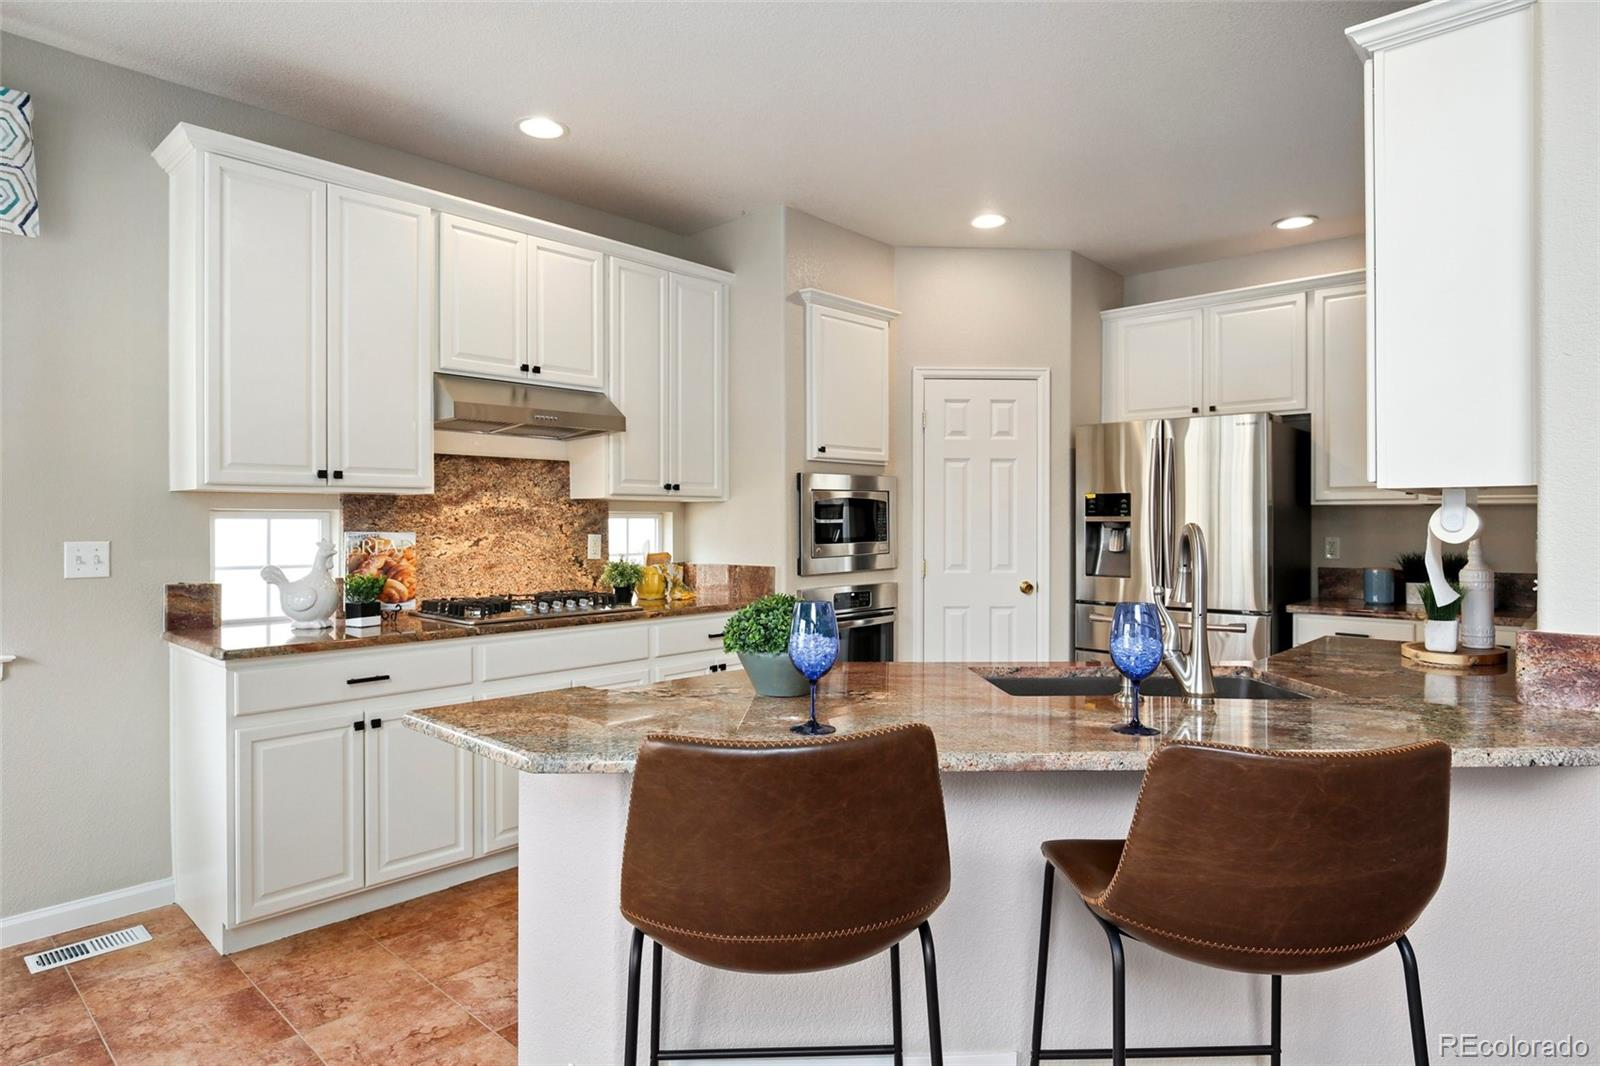 MLS# 7661027 - 10 - 4865 W 116th Court, Westminster, CO 80031